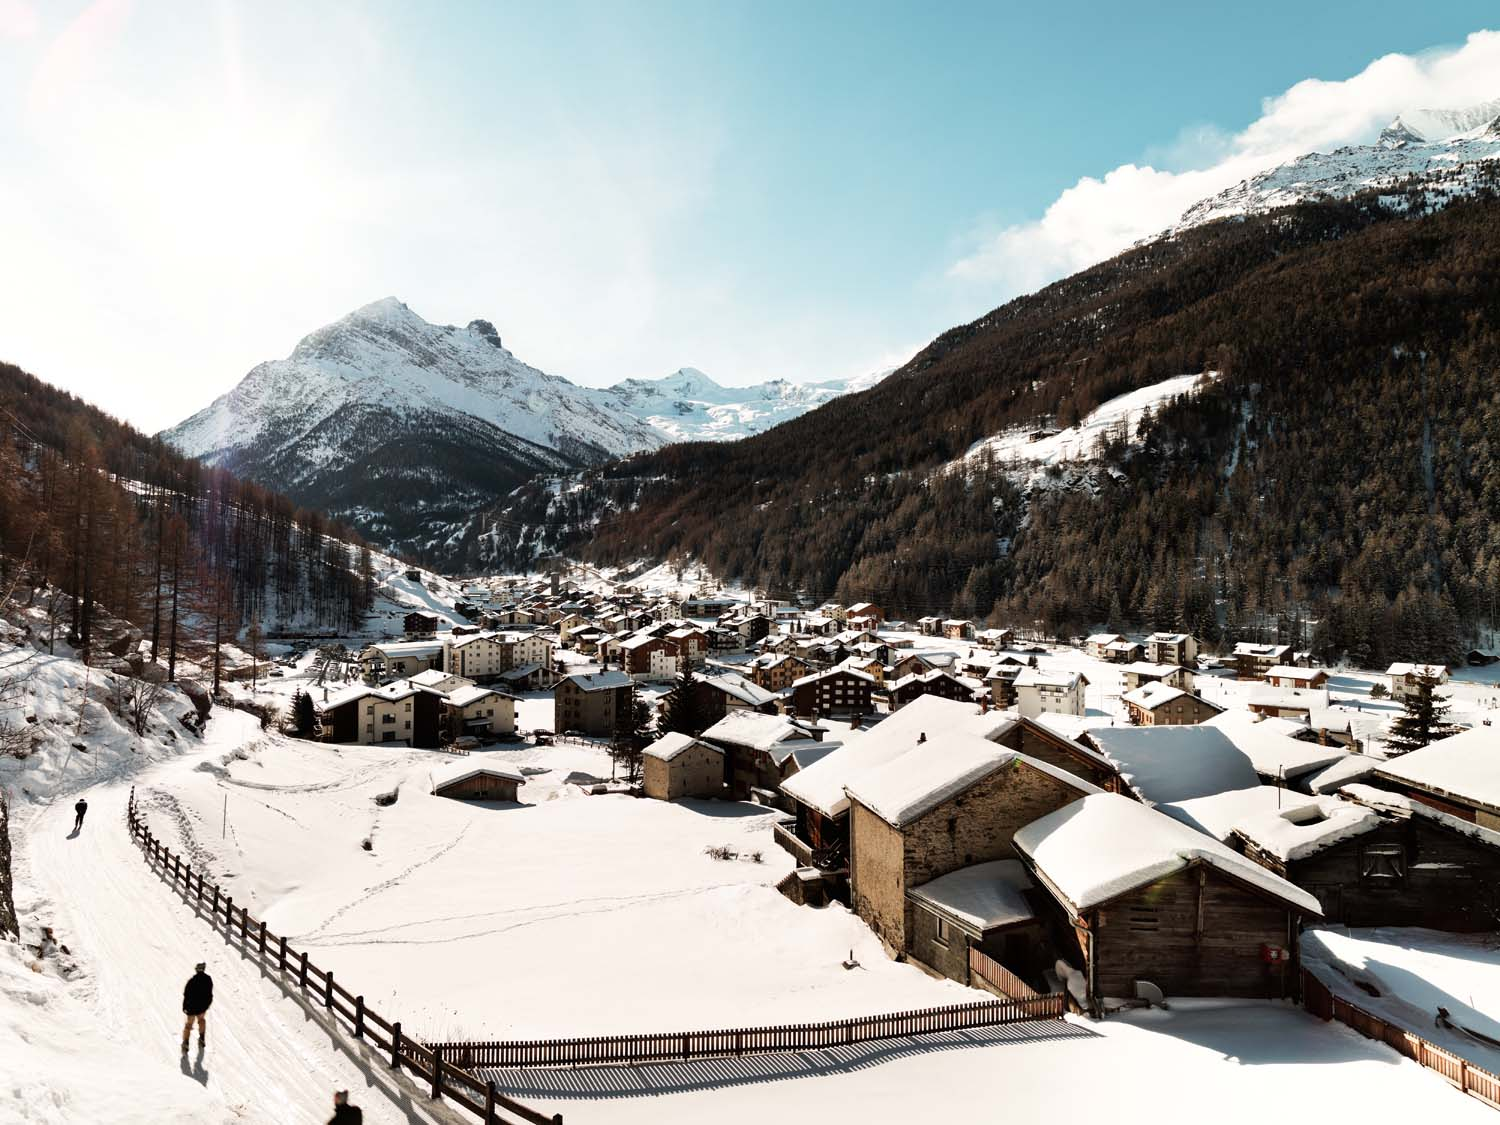 Saas-Fee is launching for the third time in the row the MountainCARD, a crowfunding campaign to get a season pass for CHF 255.